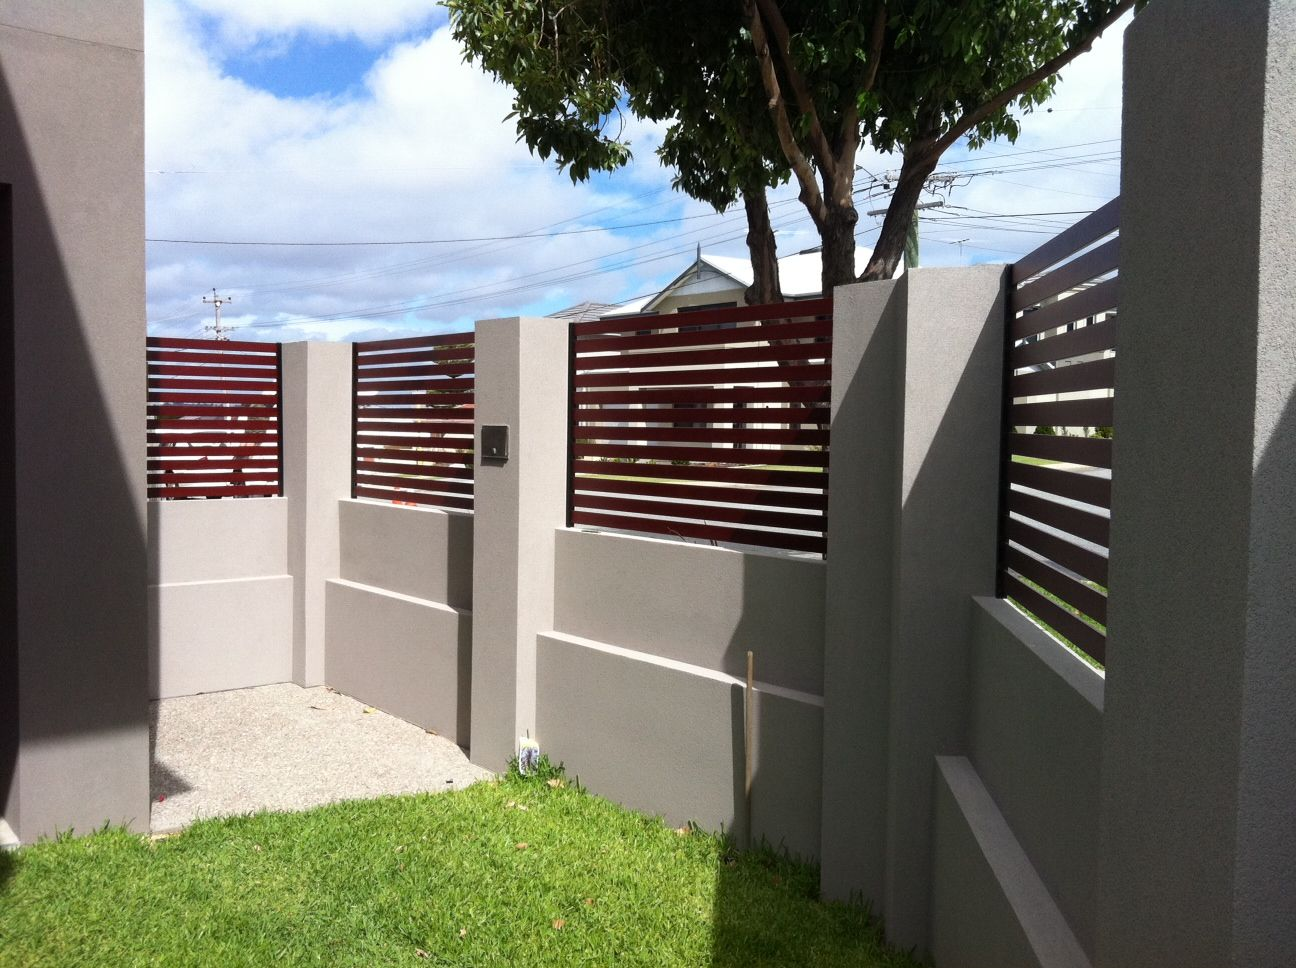 1000 images about fence on pinterest fence design fence ideas and concrete wood fence design - Fence Design Ideas